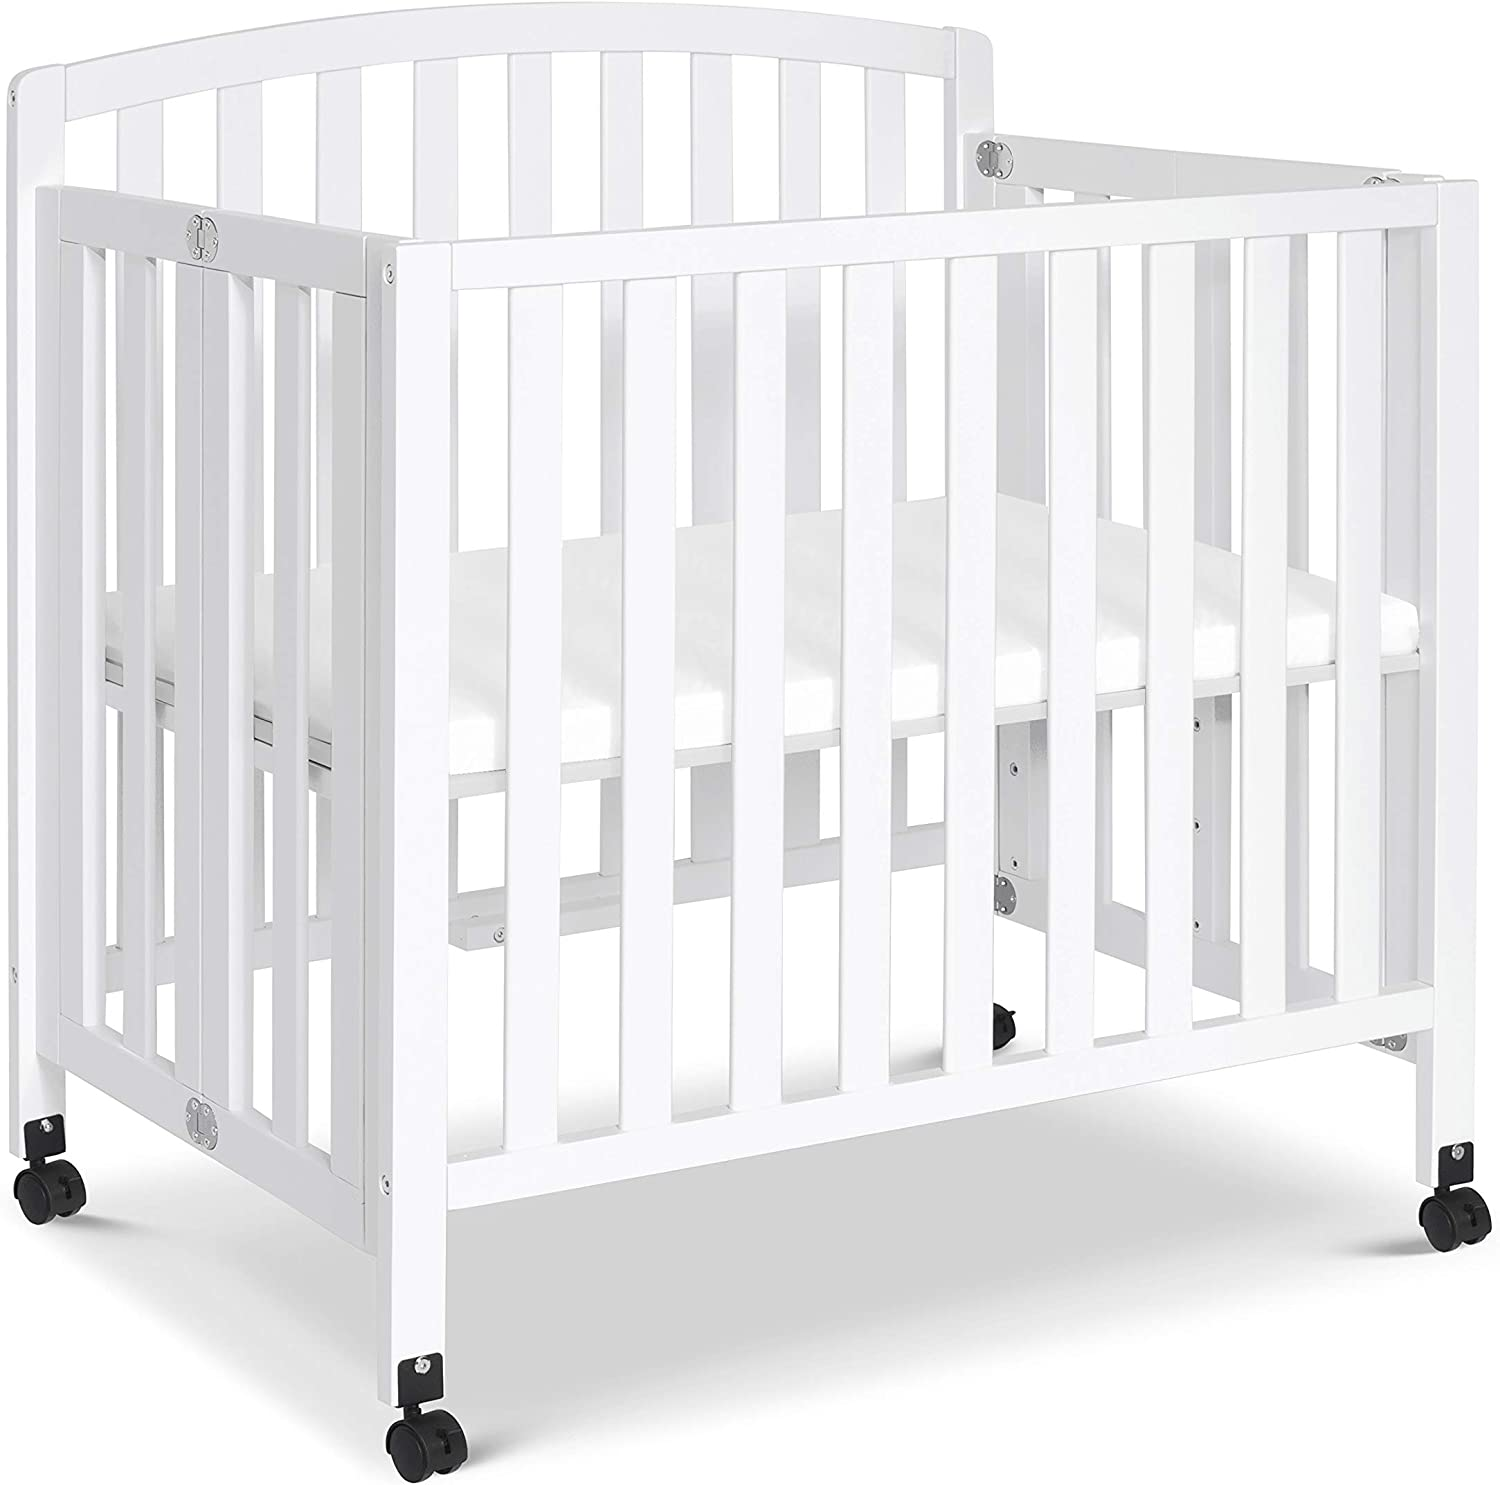 Greenguard Gold Certified DaVinci Dylan Folding Portable 3-in-1 Mini Crib and Twin Bed in White